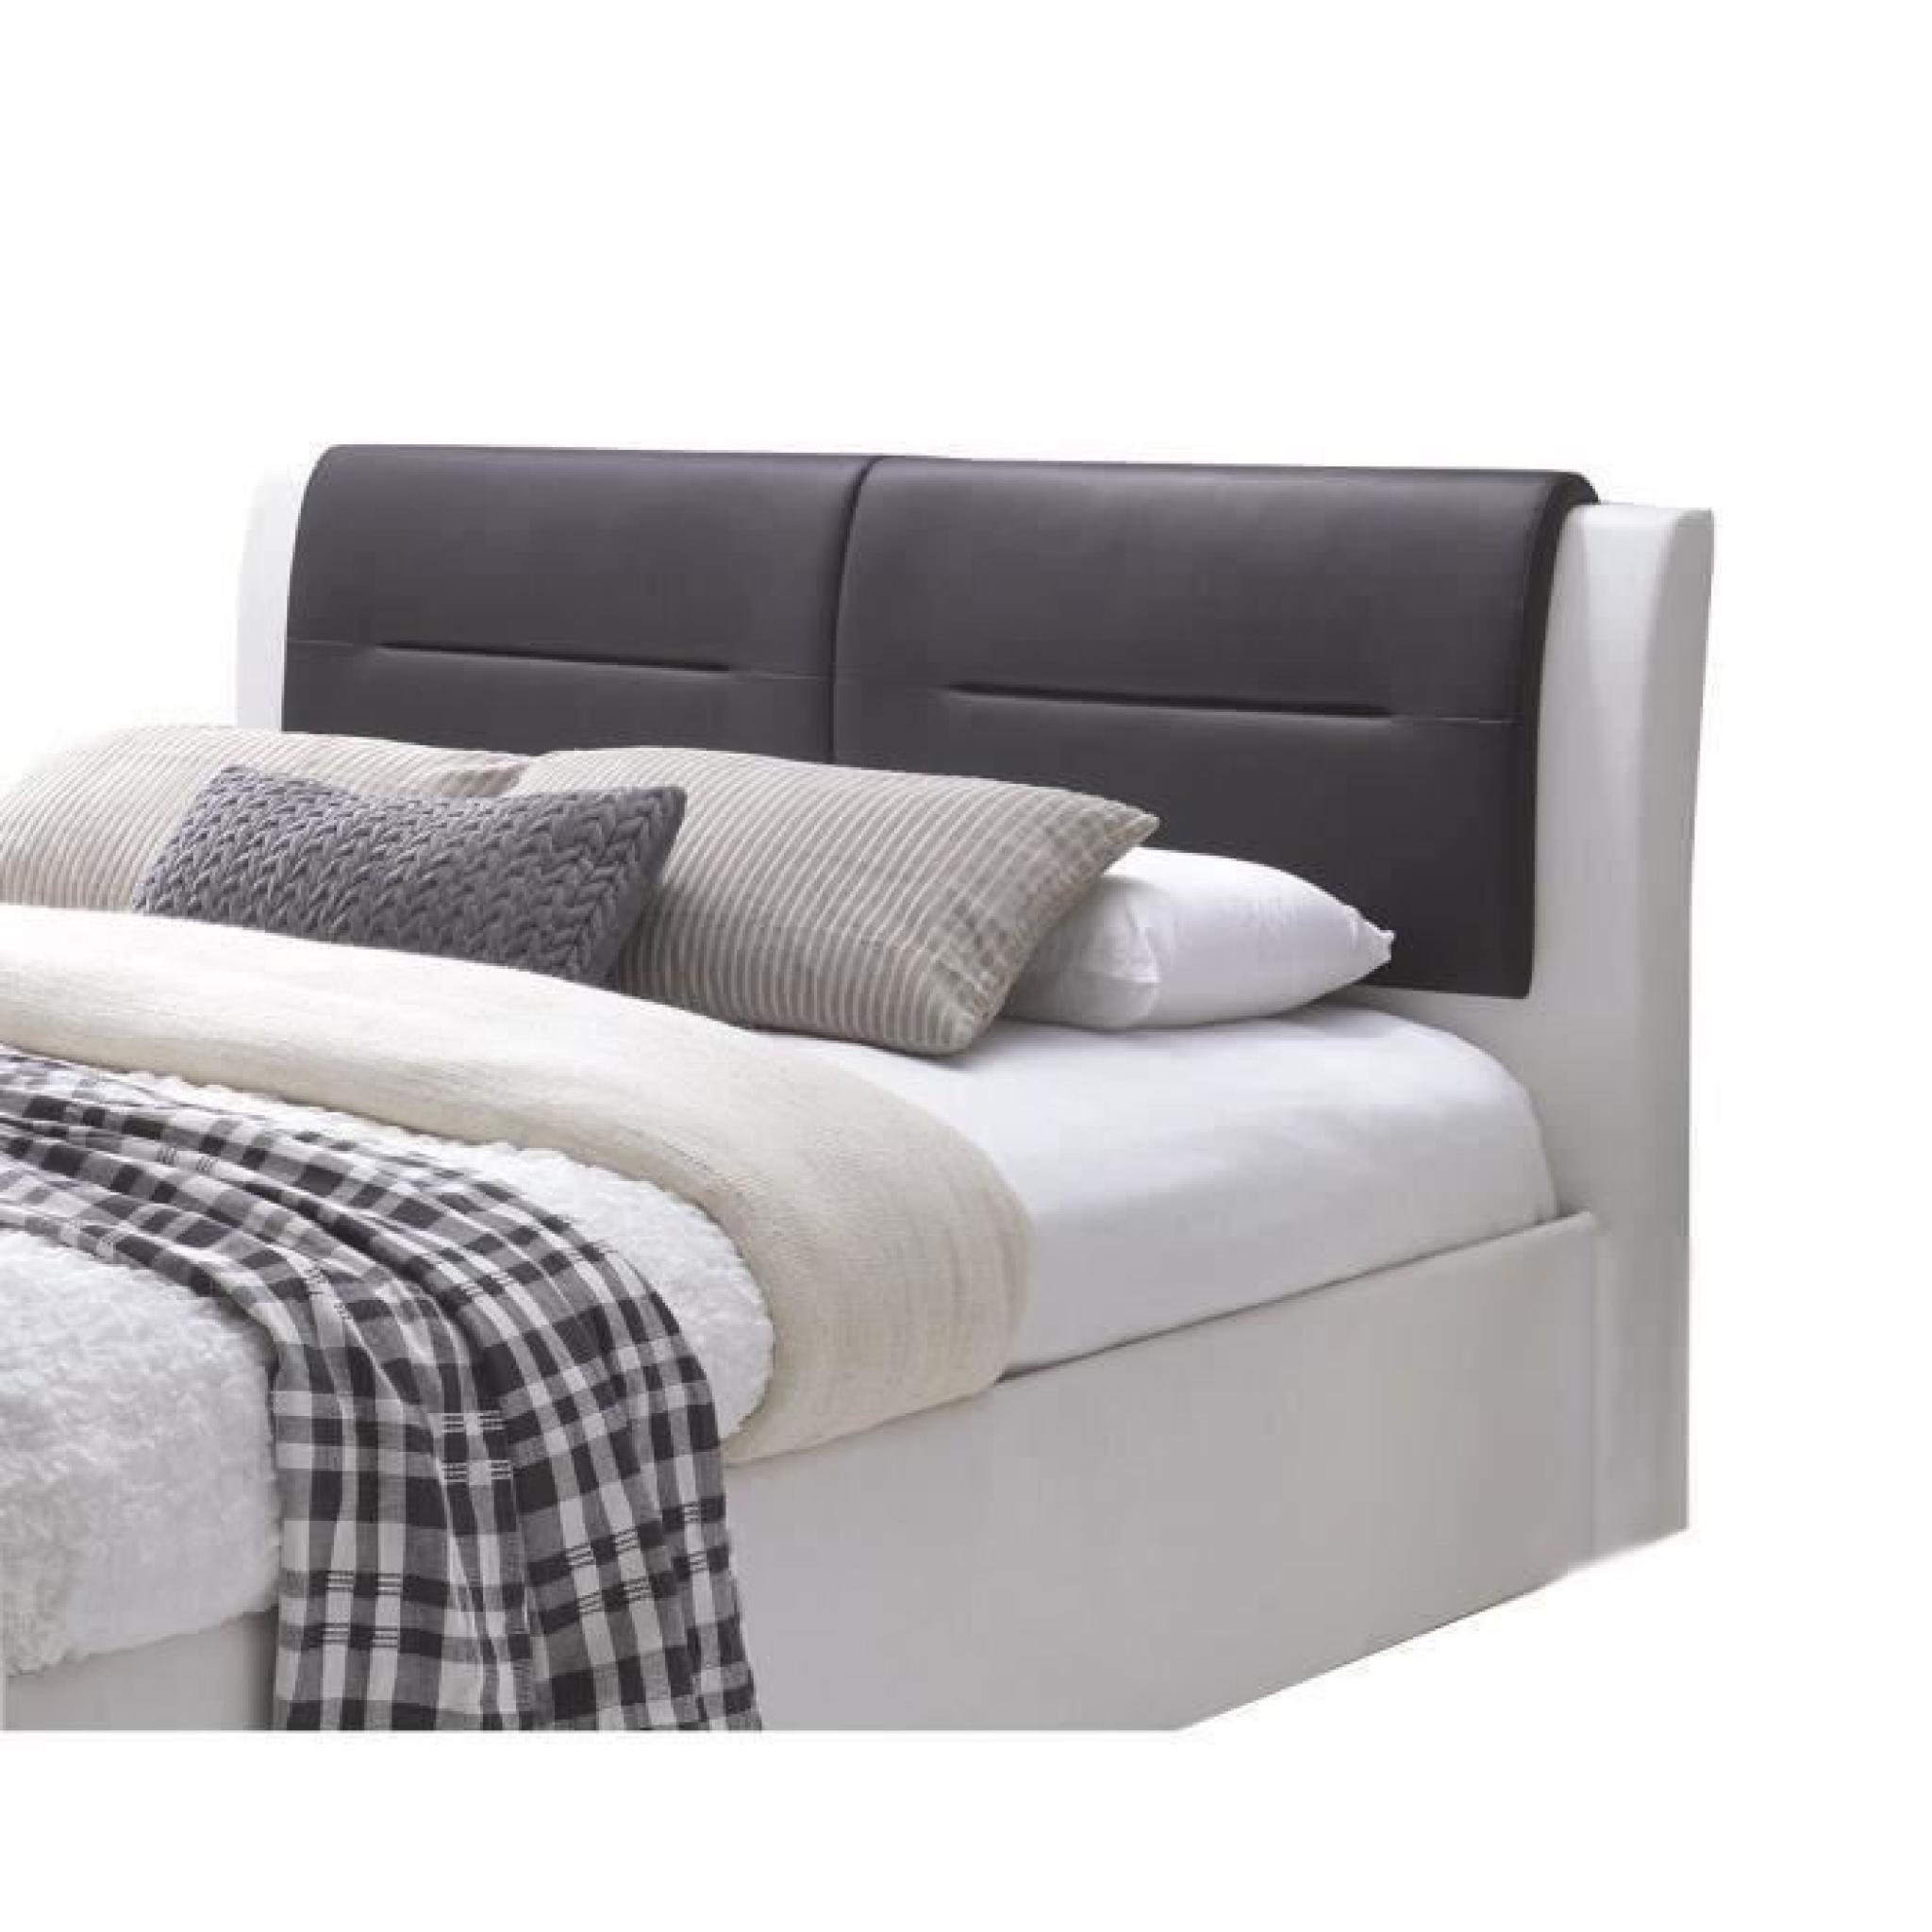 Imagina lit adulte en simili 160x200cm sommier inclus for Lit complet adulte pas cher